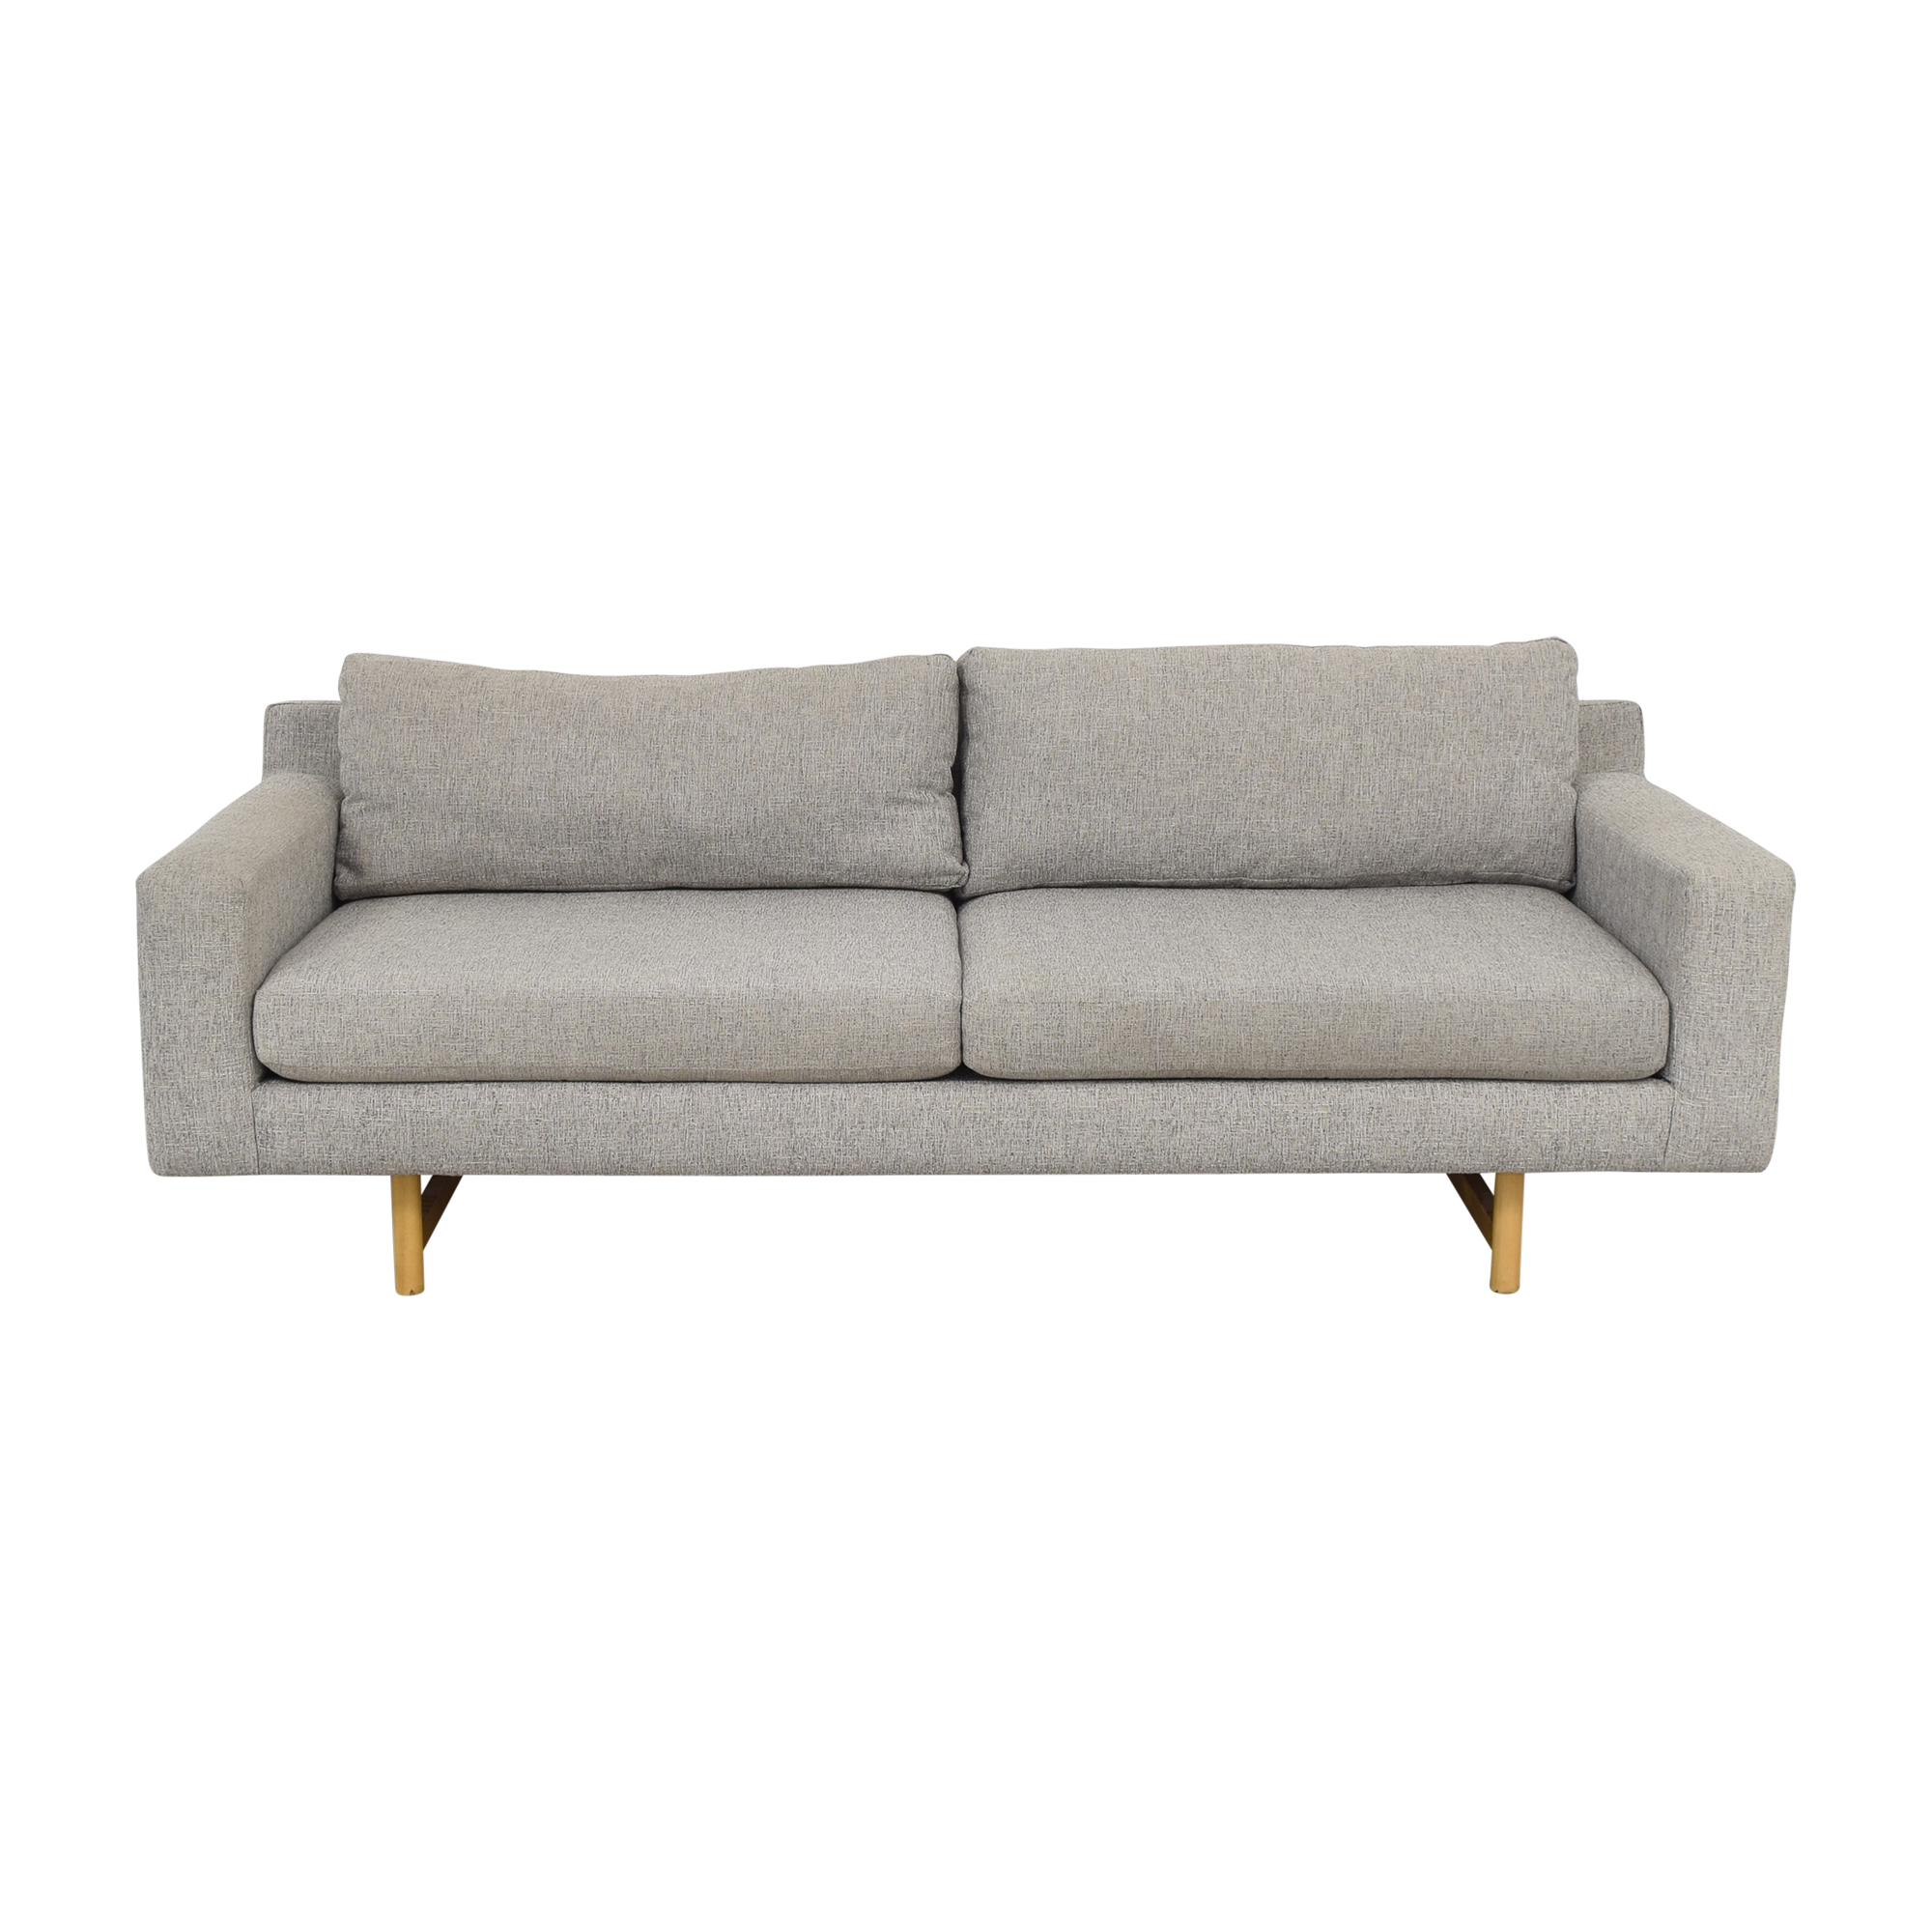 buy West Elm Eddy Sofa West Elm Classic Sofas